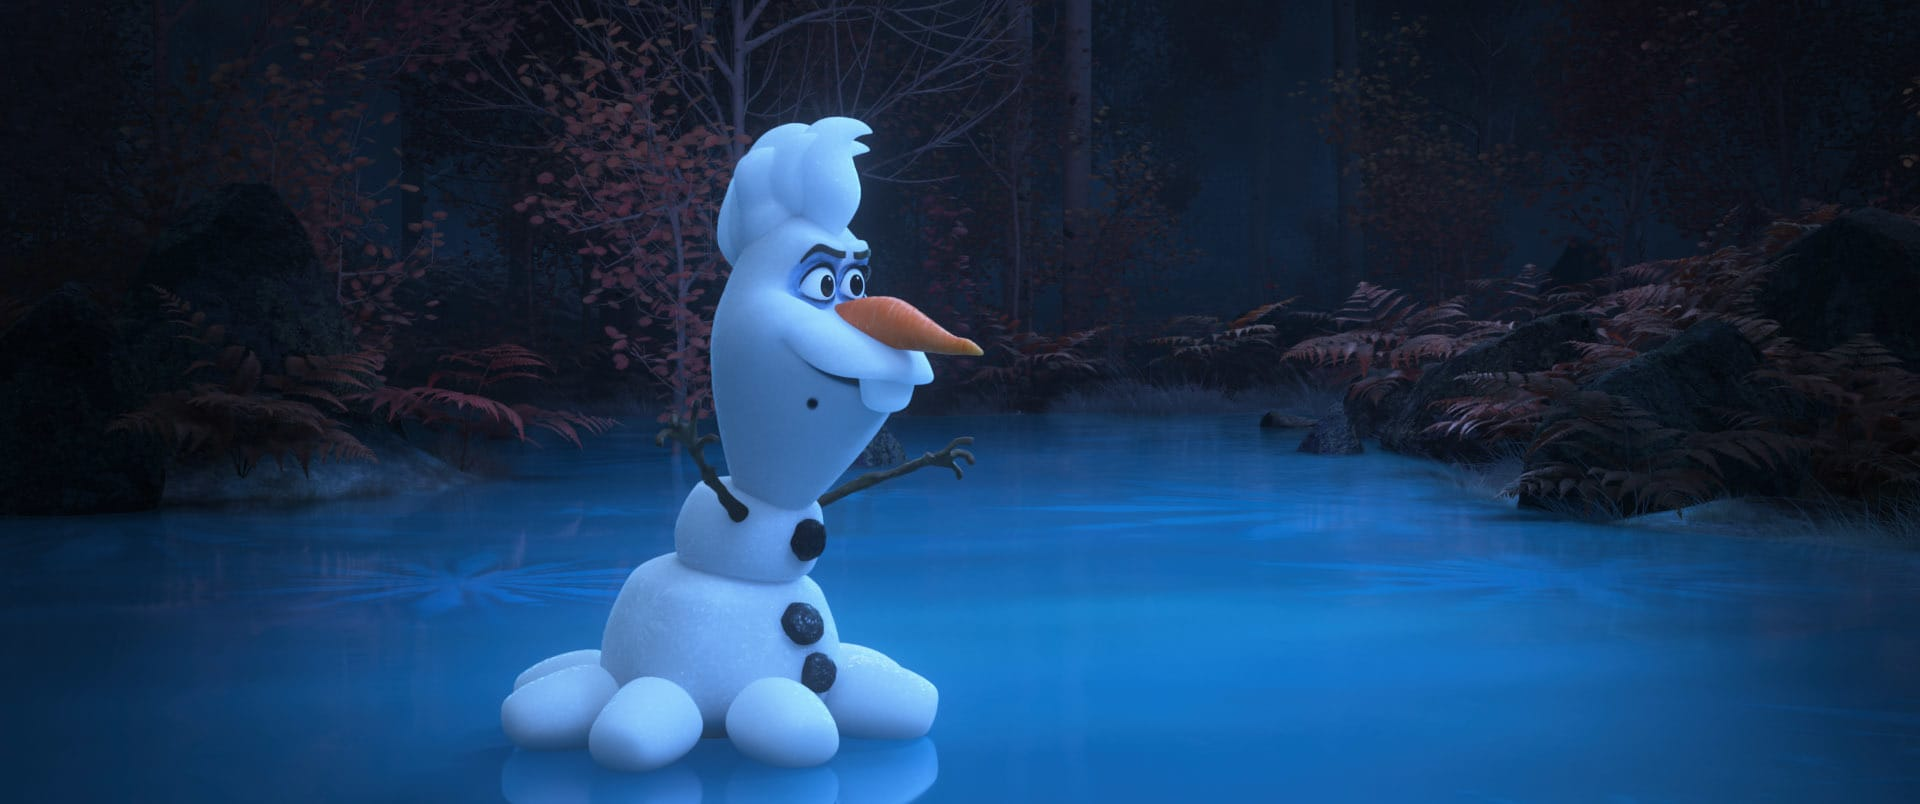 """In Walt Disney Animation Studios' new series of shorts """"Olaf Presents,"""" Olaf steps into the spotlight and goes from snowman to showman as he takes on the roles of producer, actor, costumer and set builder for his unique """"retelling"""" of five favorite Disney animated tales including """"The Little Mermaid."""" In the short, Olaf takes on diverse roles like the villainous Ursula, among others. Debuting exclusively on Disney+ Nov. 12, """"Olaf Presents"""" features the voice of Josh Gad as Olaf. Disney animator Hyrum Osmond directs, and Jennifer Newfield produces. © 2021 Disney. All Rights Reserved."""